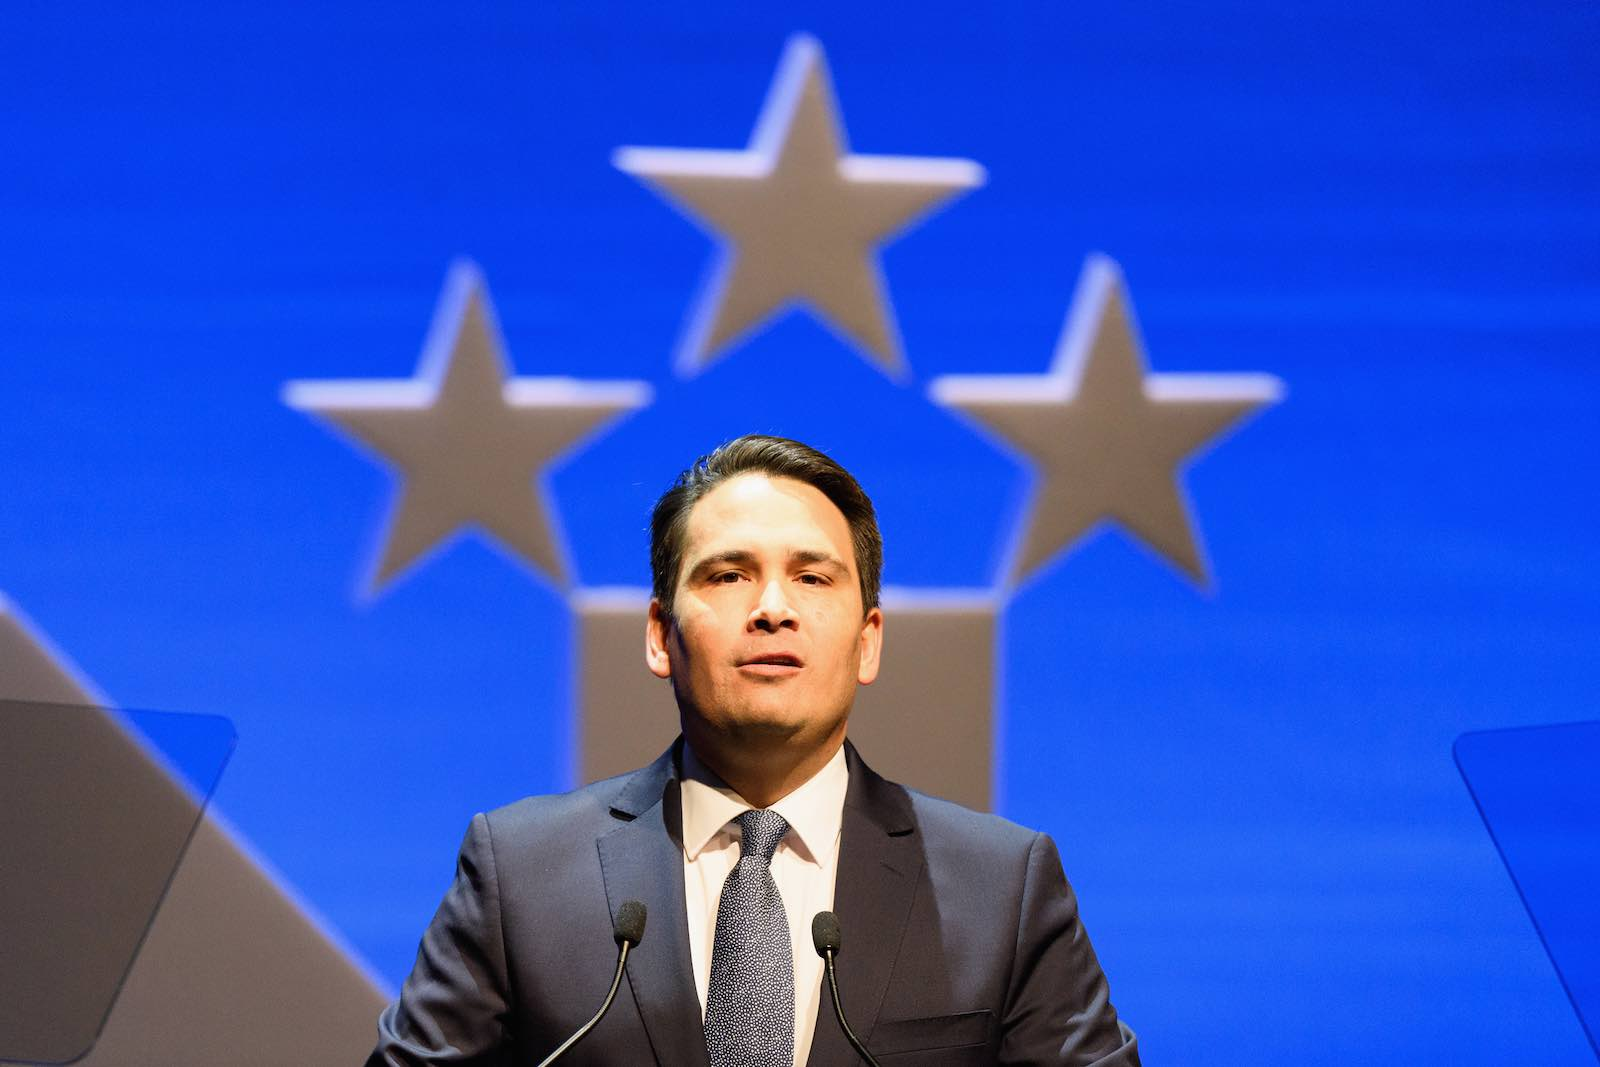 National Party Leader Simon Bridges addresses the party conference in Christchurch in July (Photo: Kai Schwoerer/Getty Images)